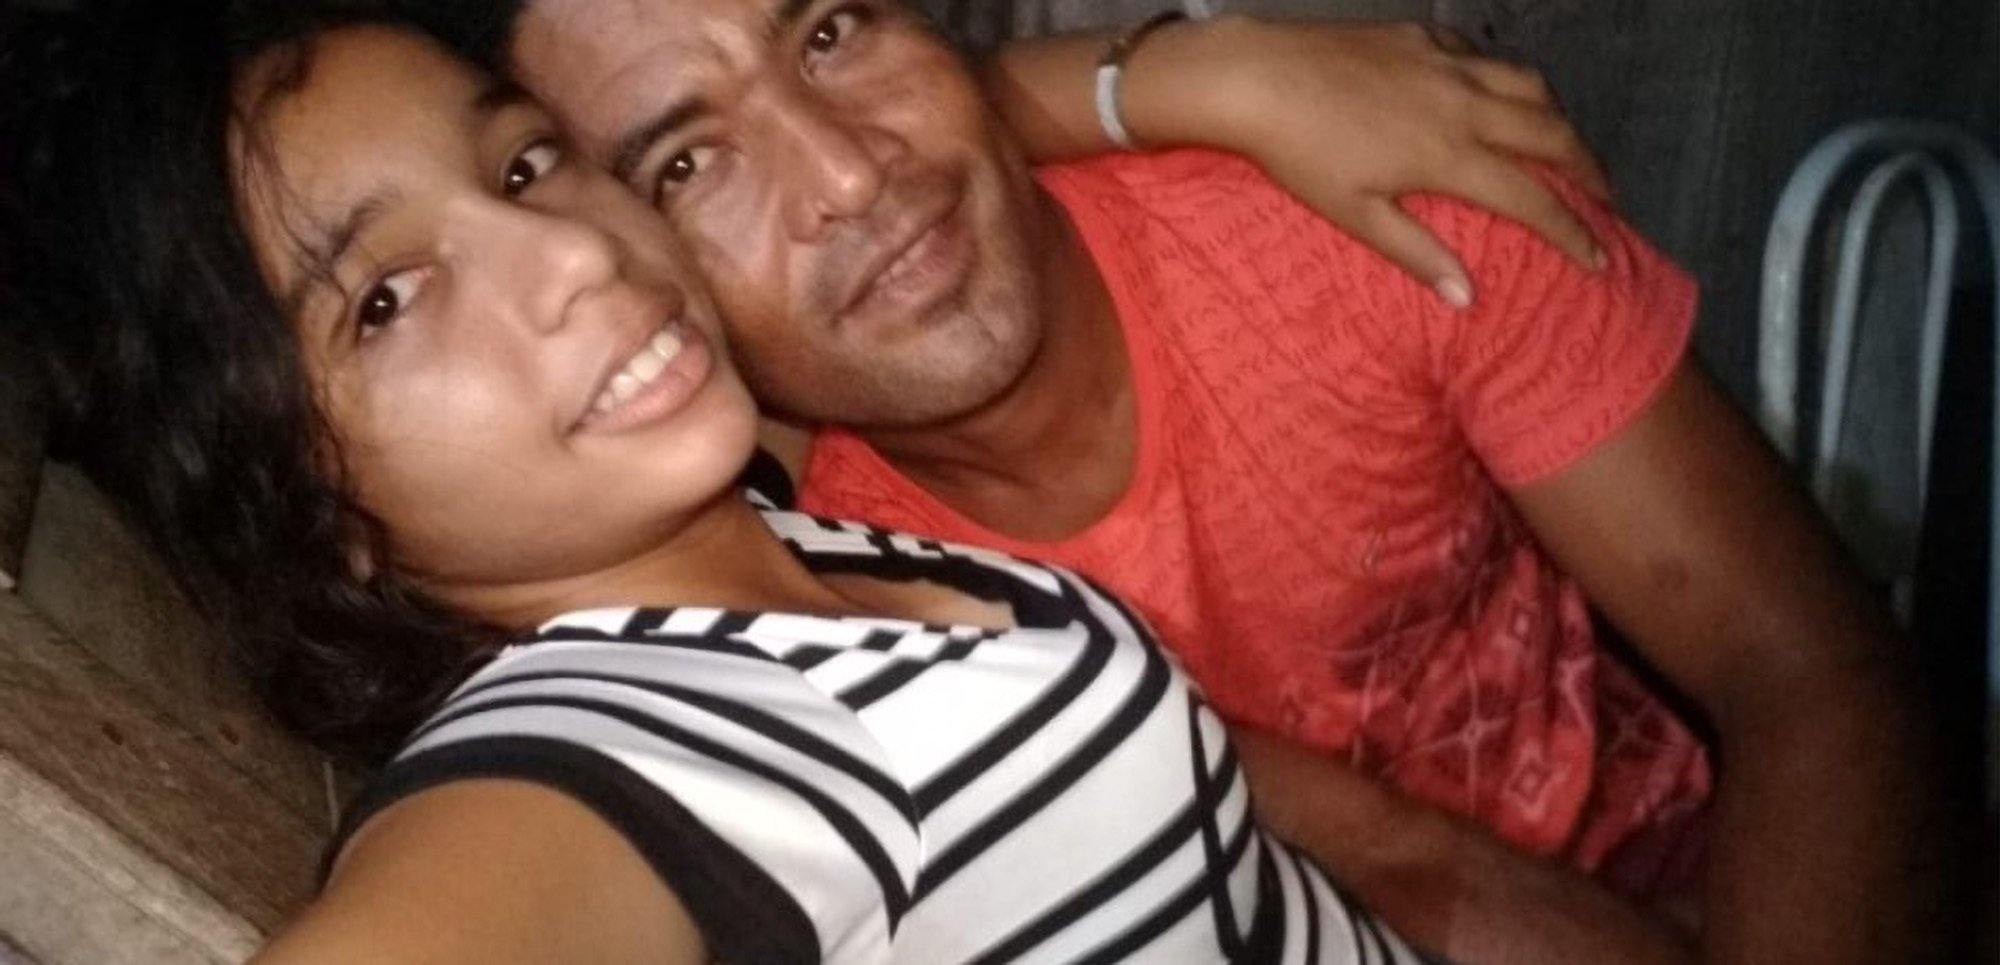 Luana Costa was allegedly subjected to sexual assaults by Francinildo Moraes, 43, (both pictured) before and during her pregnancy